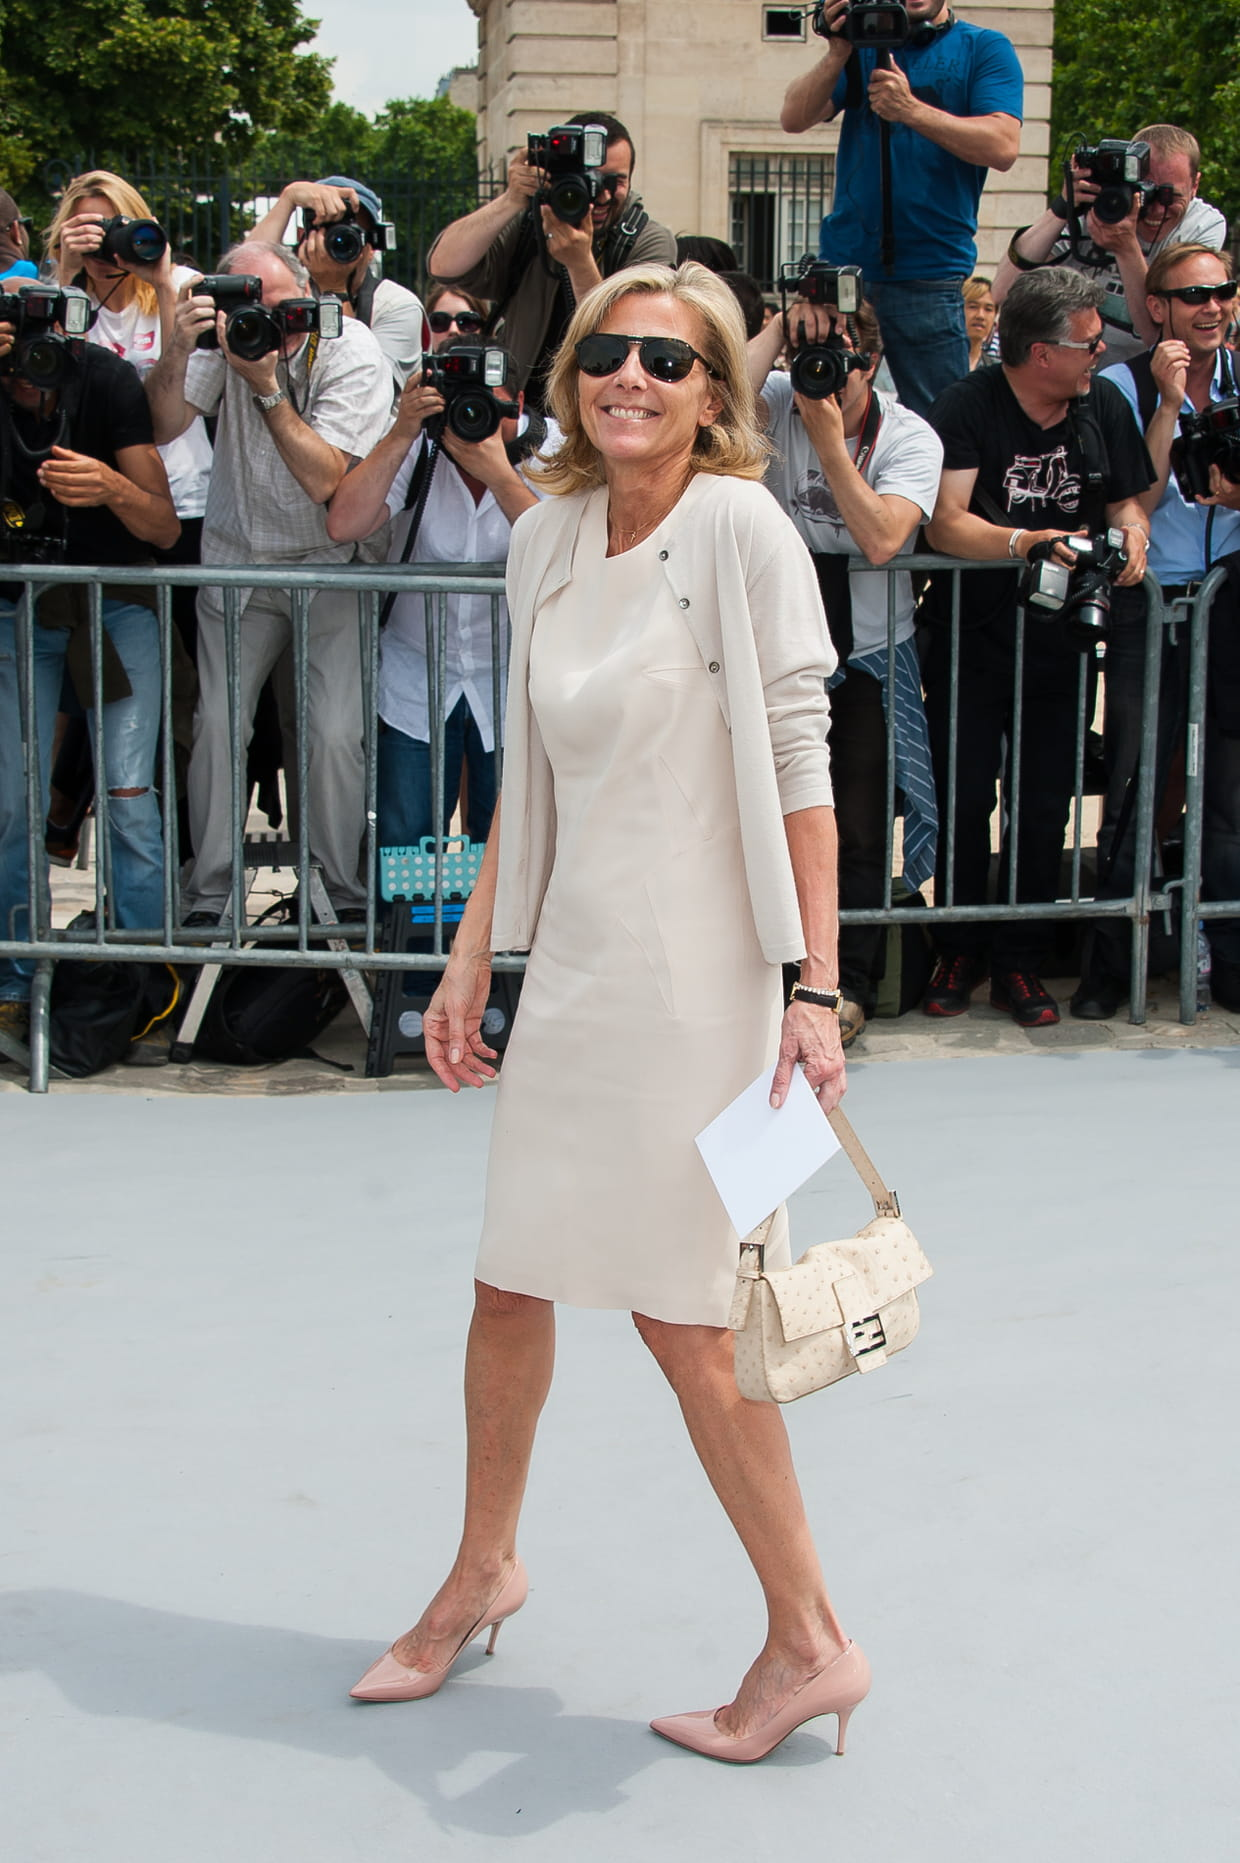 claire chazal en total look cr u00e8me